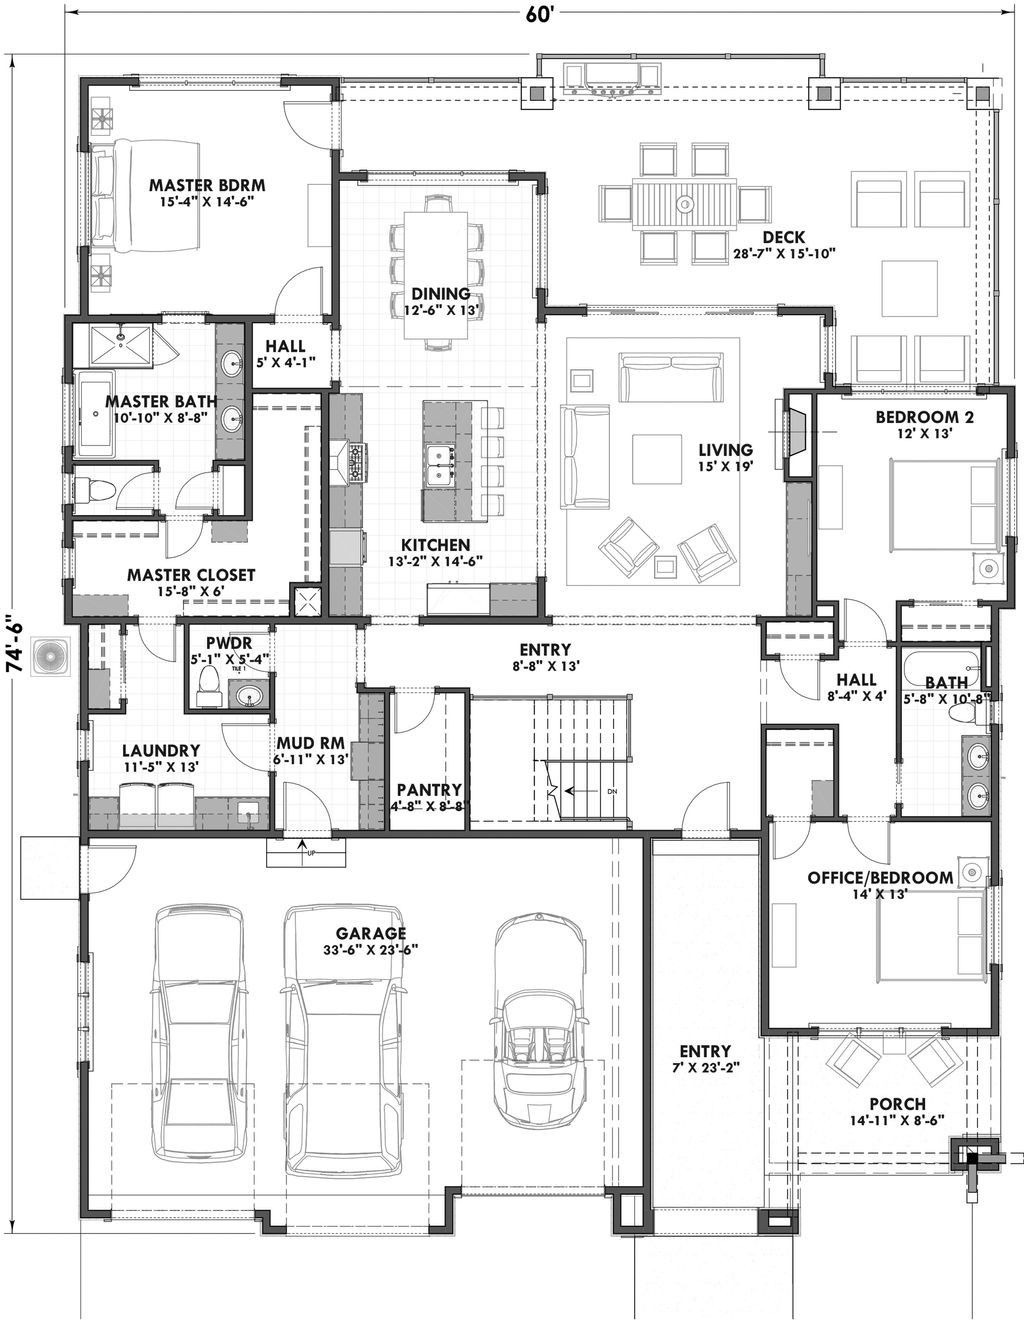 7 Bedroom Floor Plans 2021 Ranch Style Floor Plans Floor Plans Ranch Ranch Style House Plans